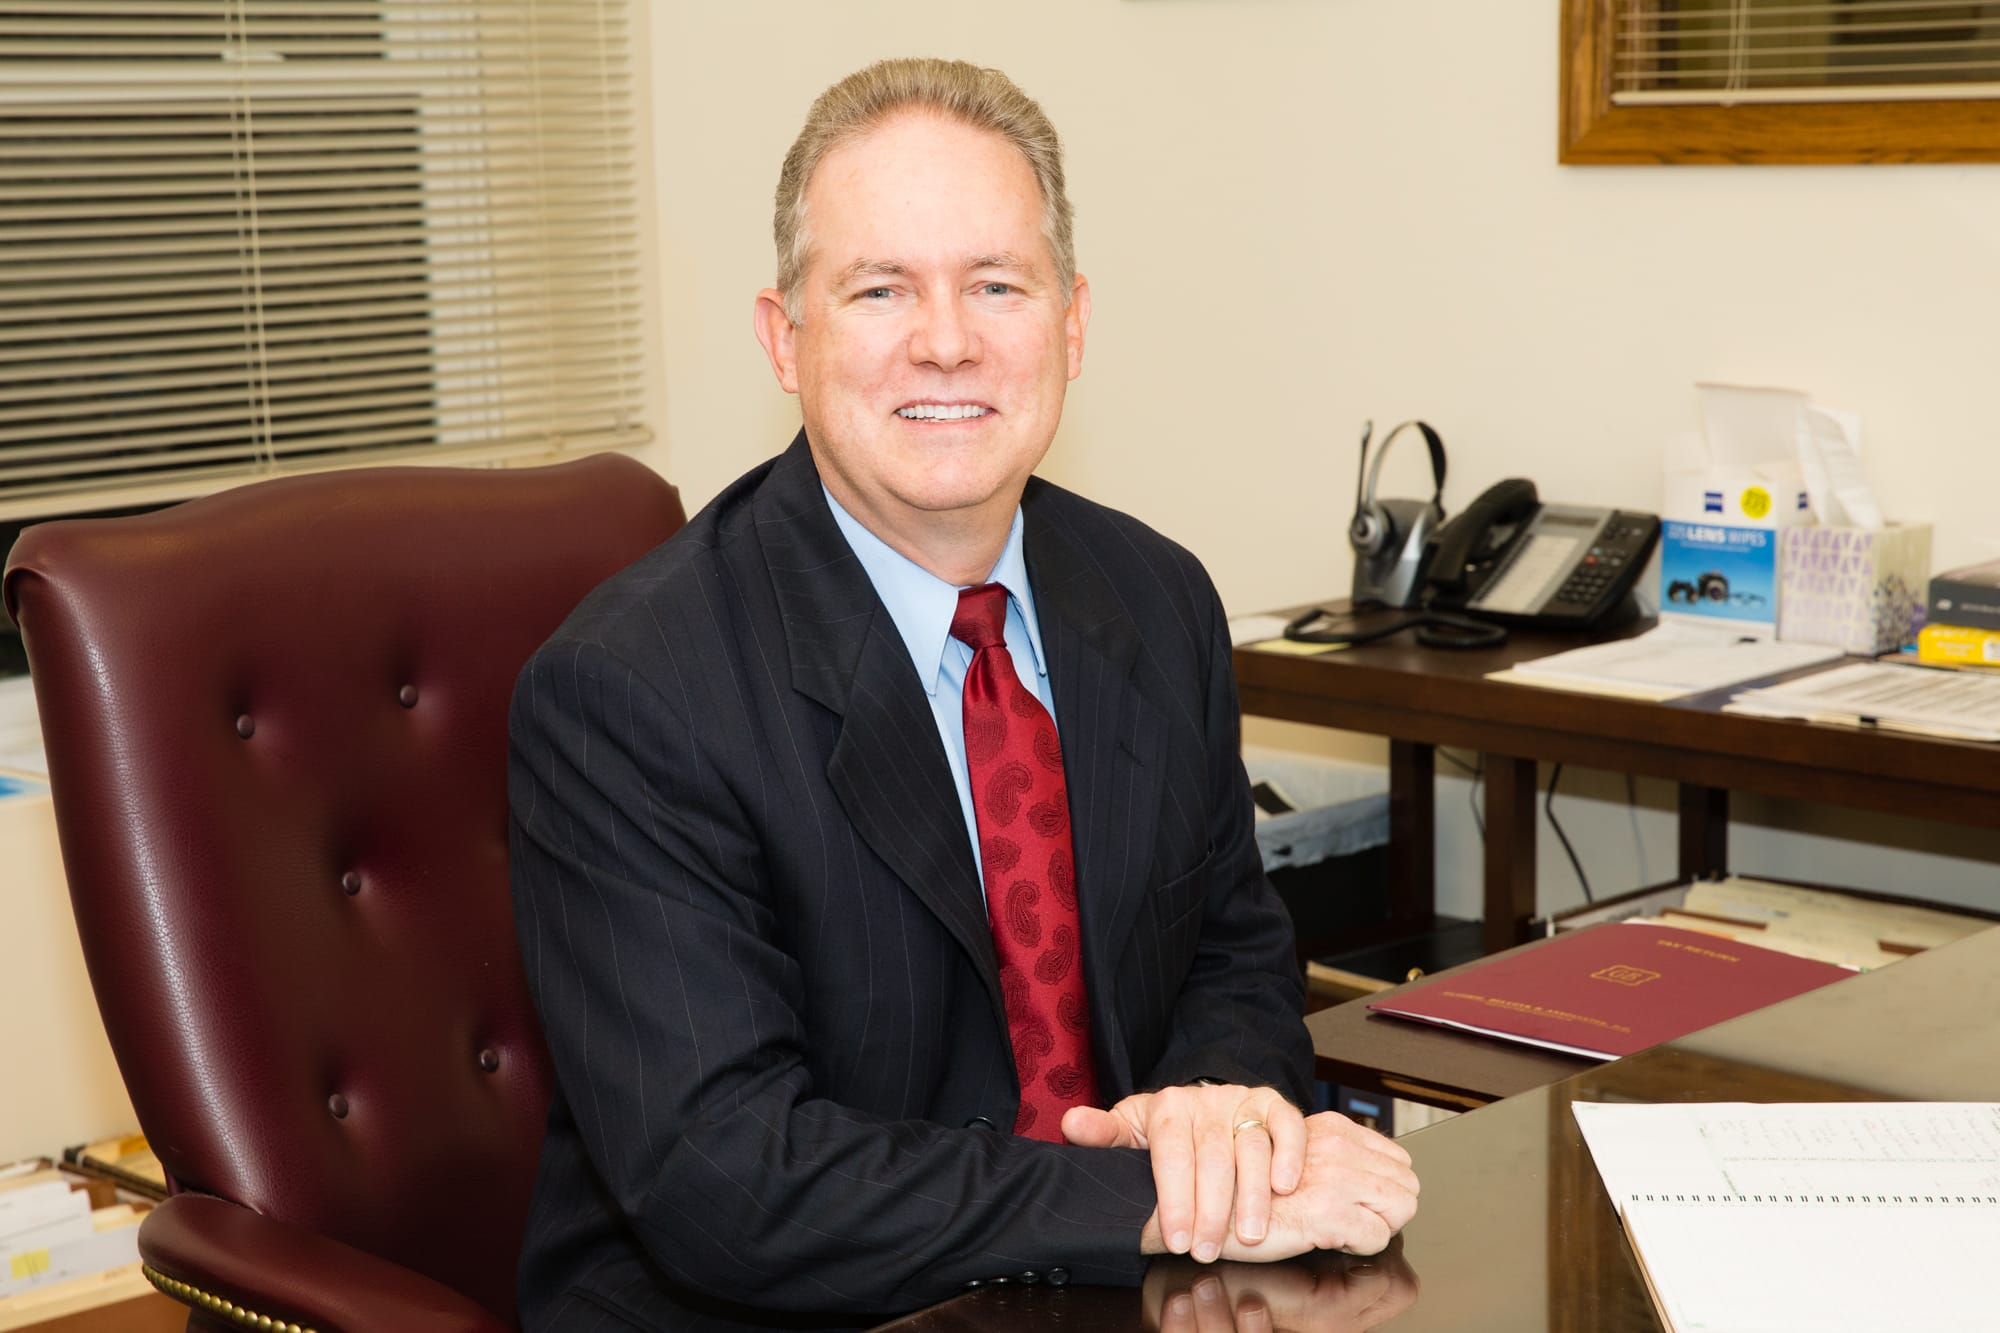 Charles R. Guthrie, CPA - Managing Partner